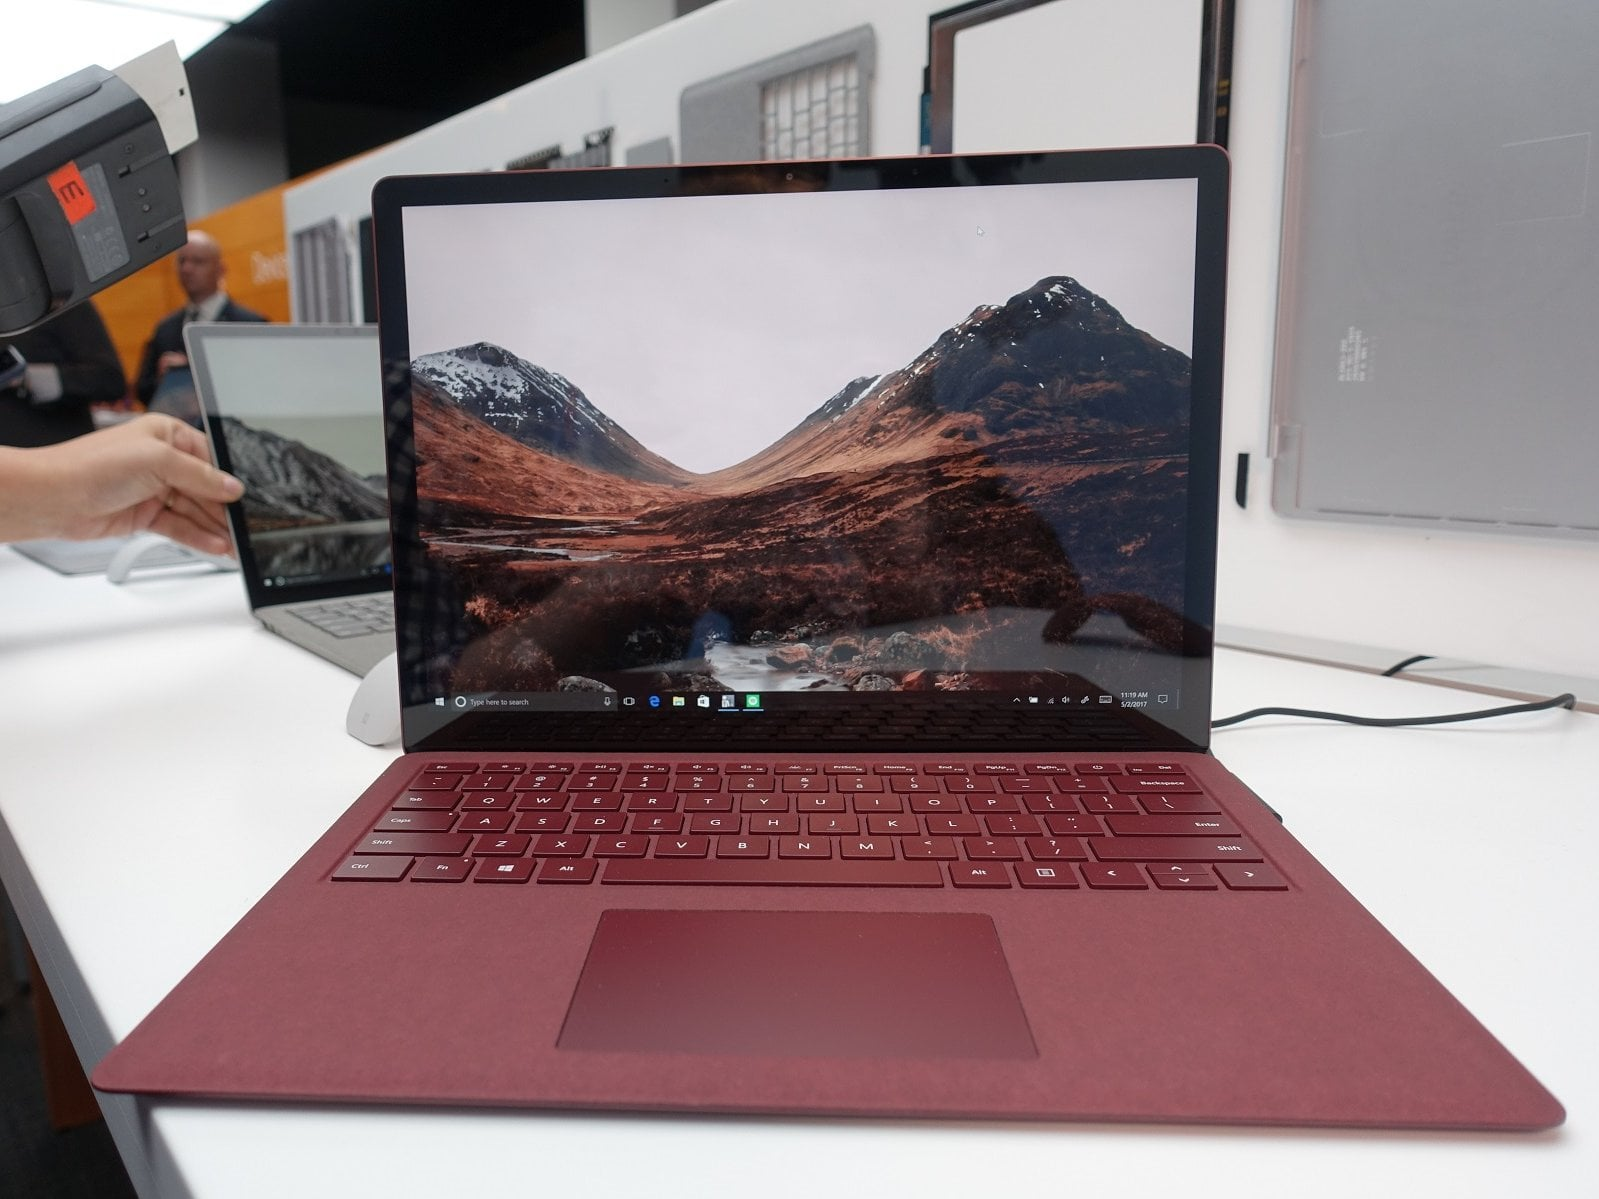 Following up on the declaration of the Windows 10 S, Microsoft revealed an all new-fangled Surface Laptop to go along with it. It's hard to notify what